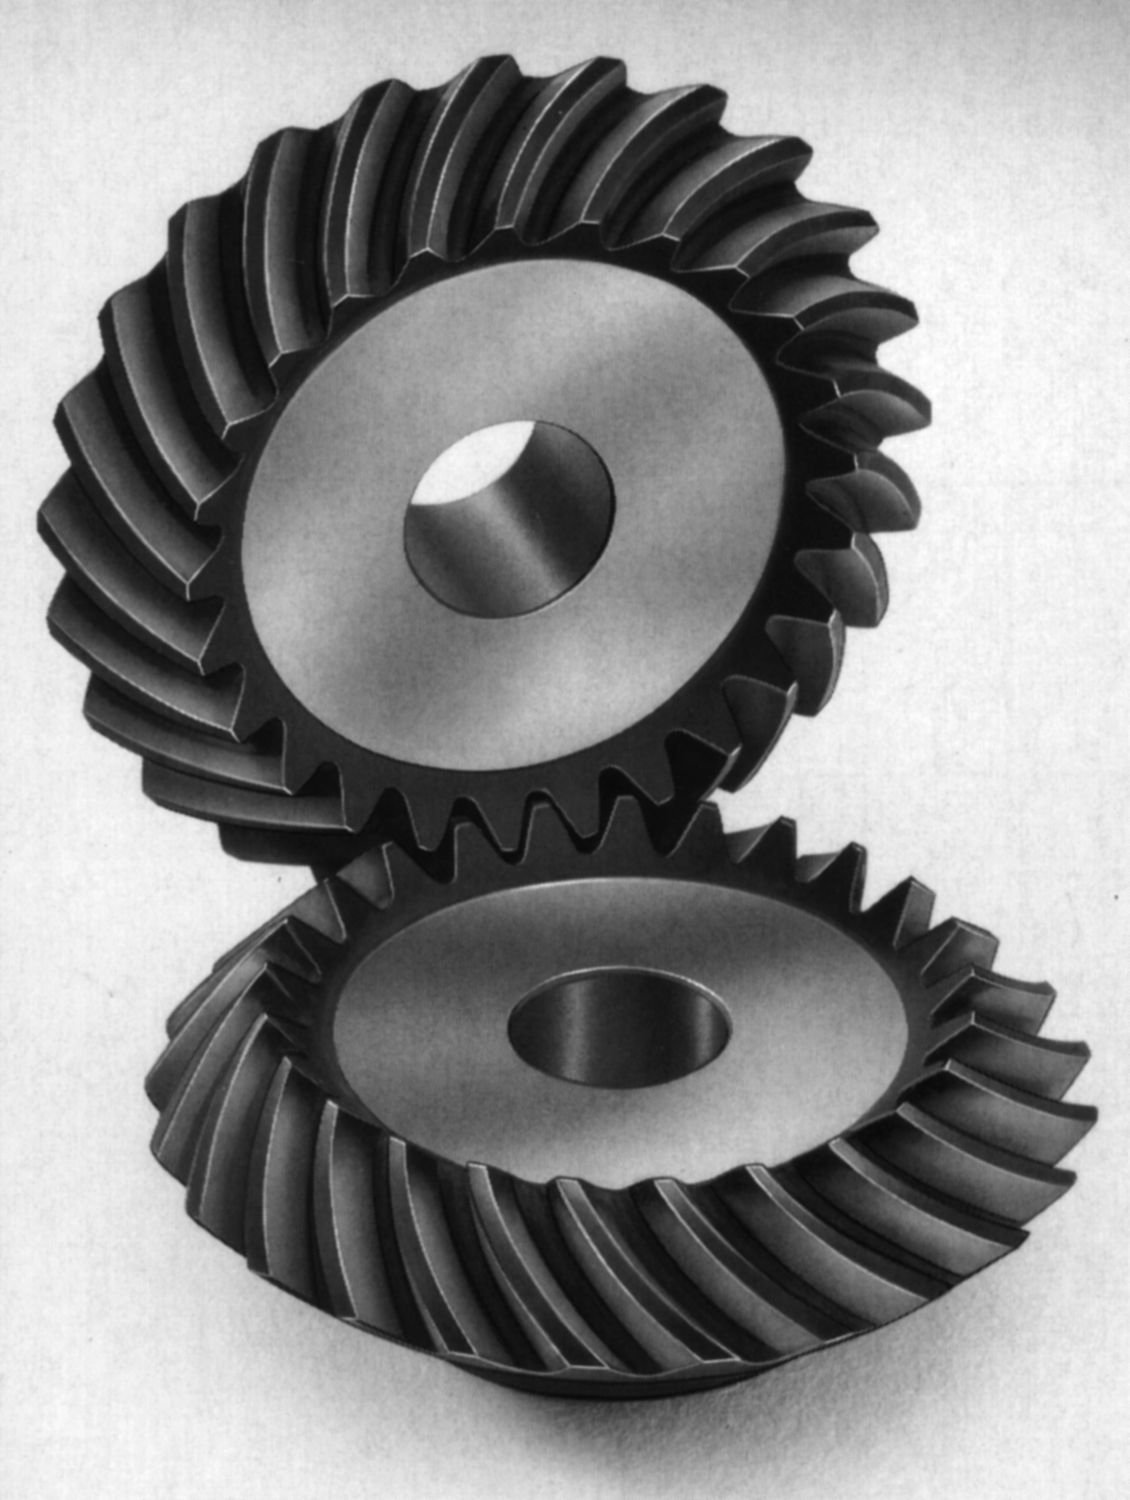 1:3 Ratio 5M16//48 Ametric/® Metric 5 Metric Module Tooth Profile 16 Teeth 2nd Gear Paired Steel Bevel Gear Set, 20 Degree Pressure angle 1st Gear 48 Teeth Mfg Code 1-027